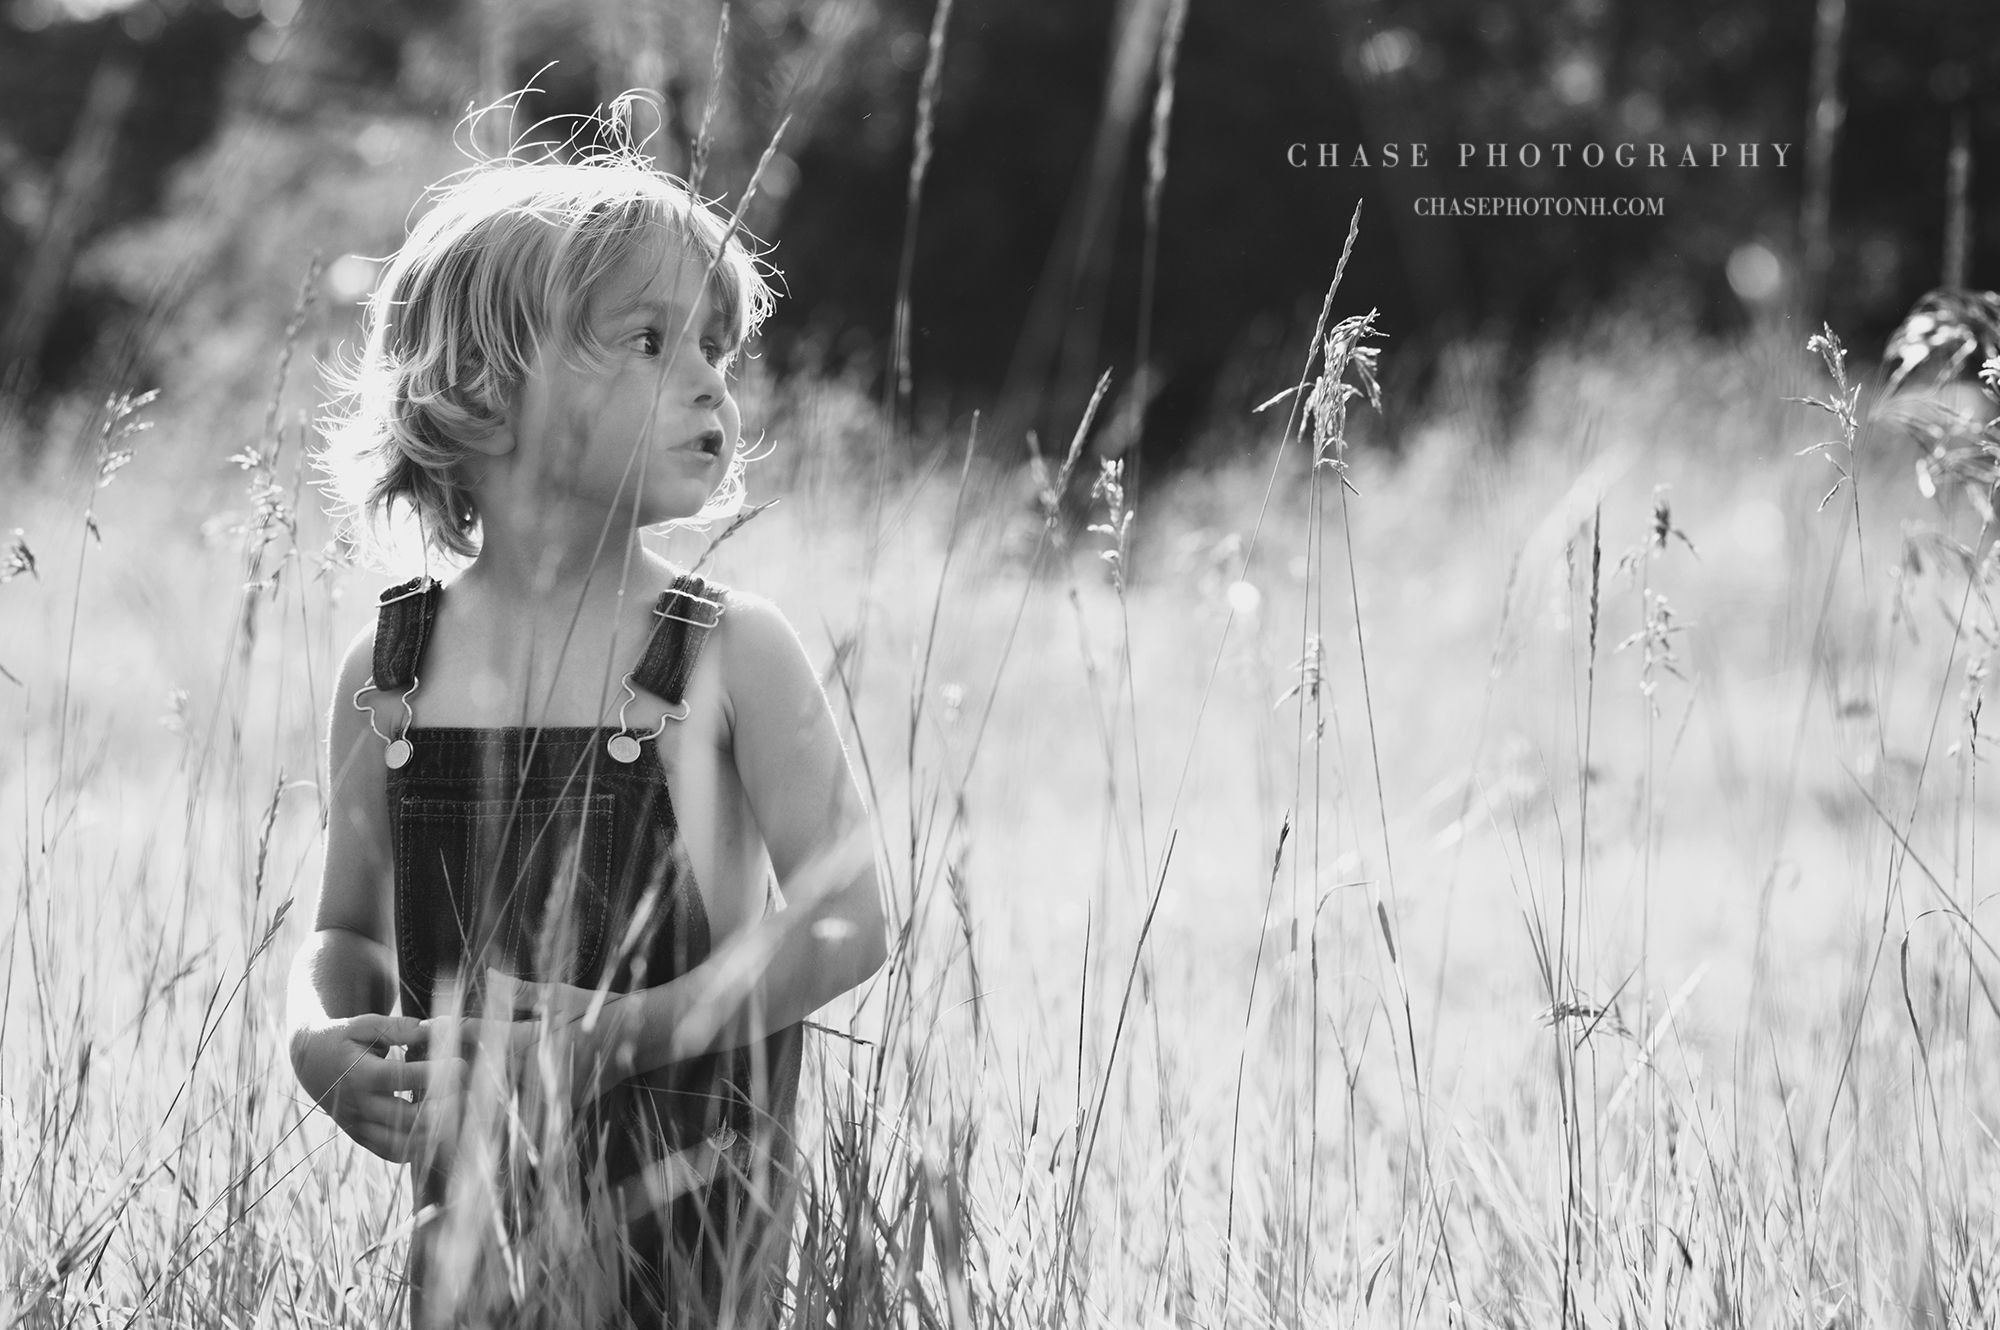 """Time """"My son will be 4 at the end of the year, and I can hardly believe it.  I had just gotten used to the idea that he was a toddler, not a baby, and now he's a preschooler! """"  Chase Photography 